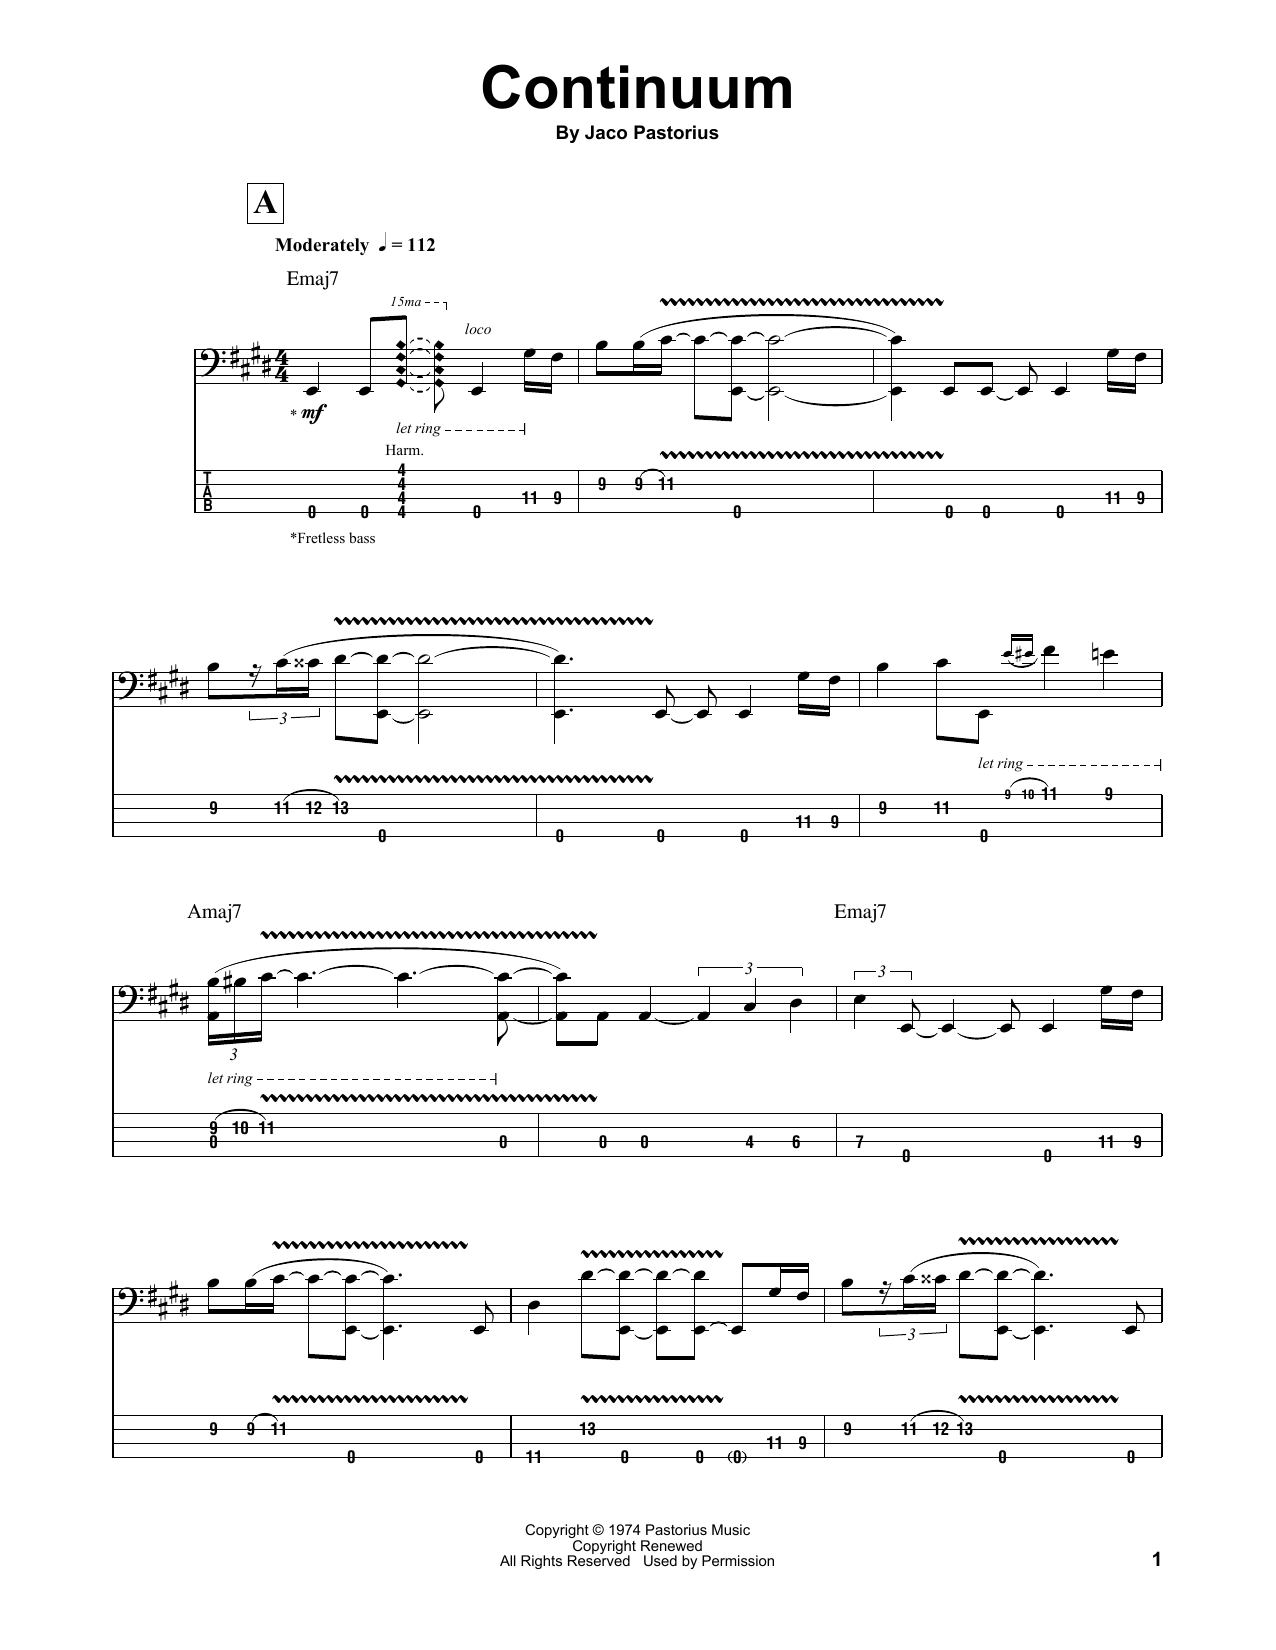 Tablature guitare Continuum de Jaco Pastorius - Tablature Basse